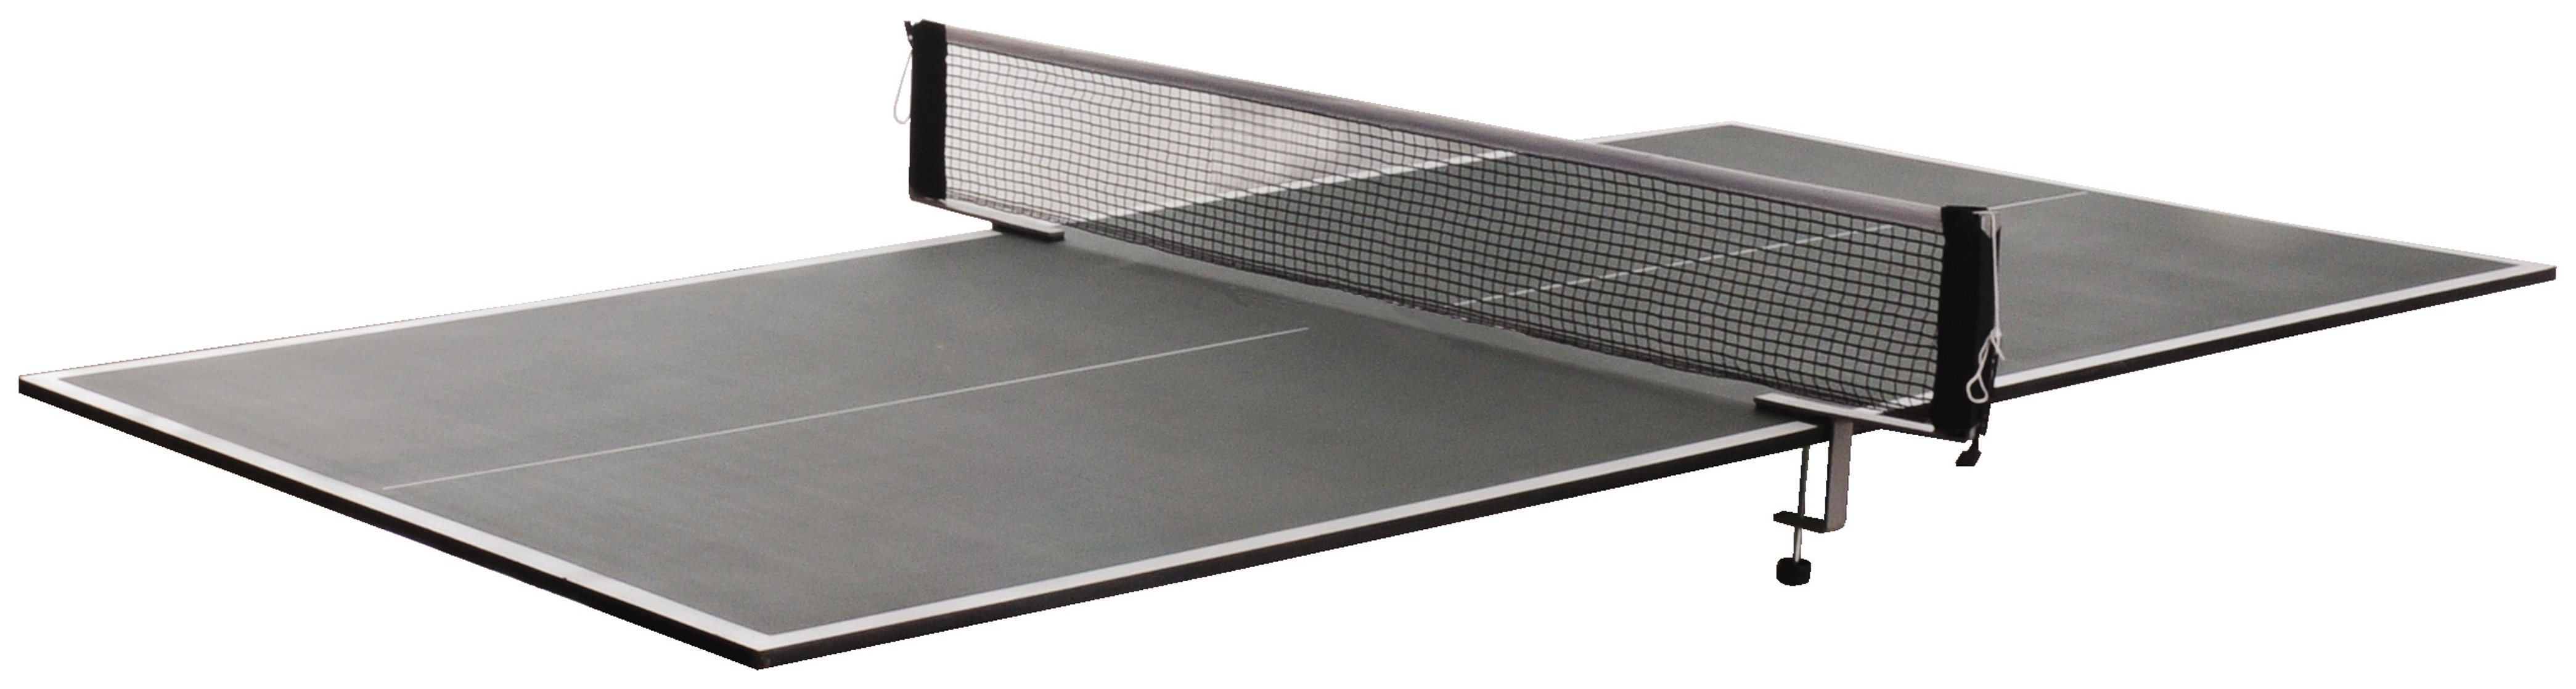 Image of Butterfly - Table Tennis Table Top